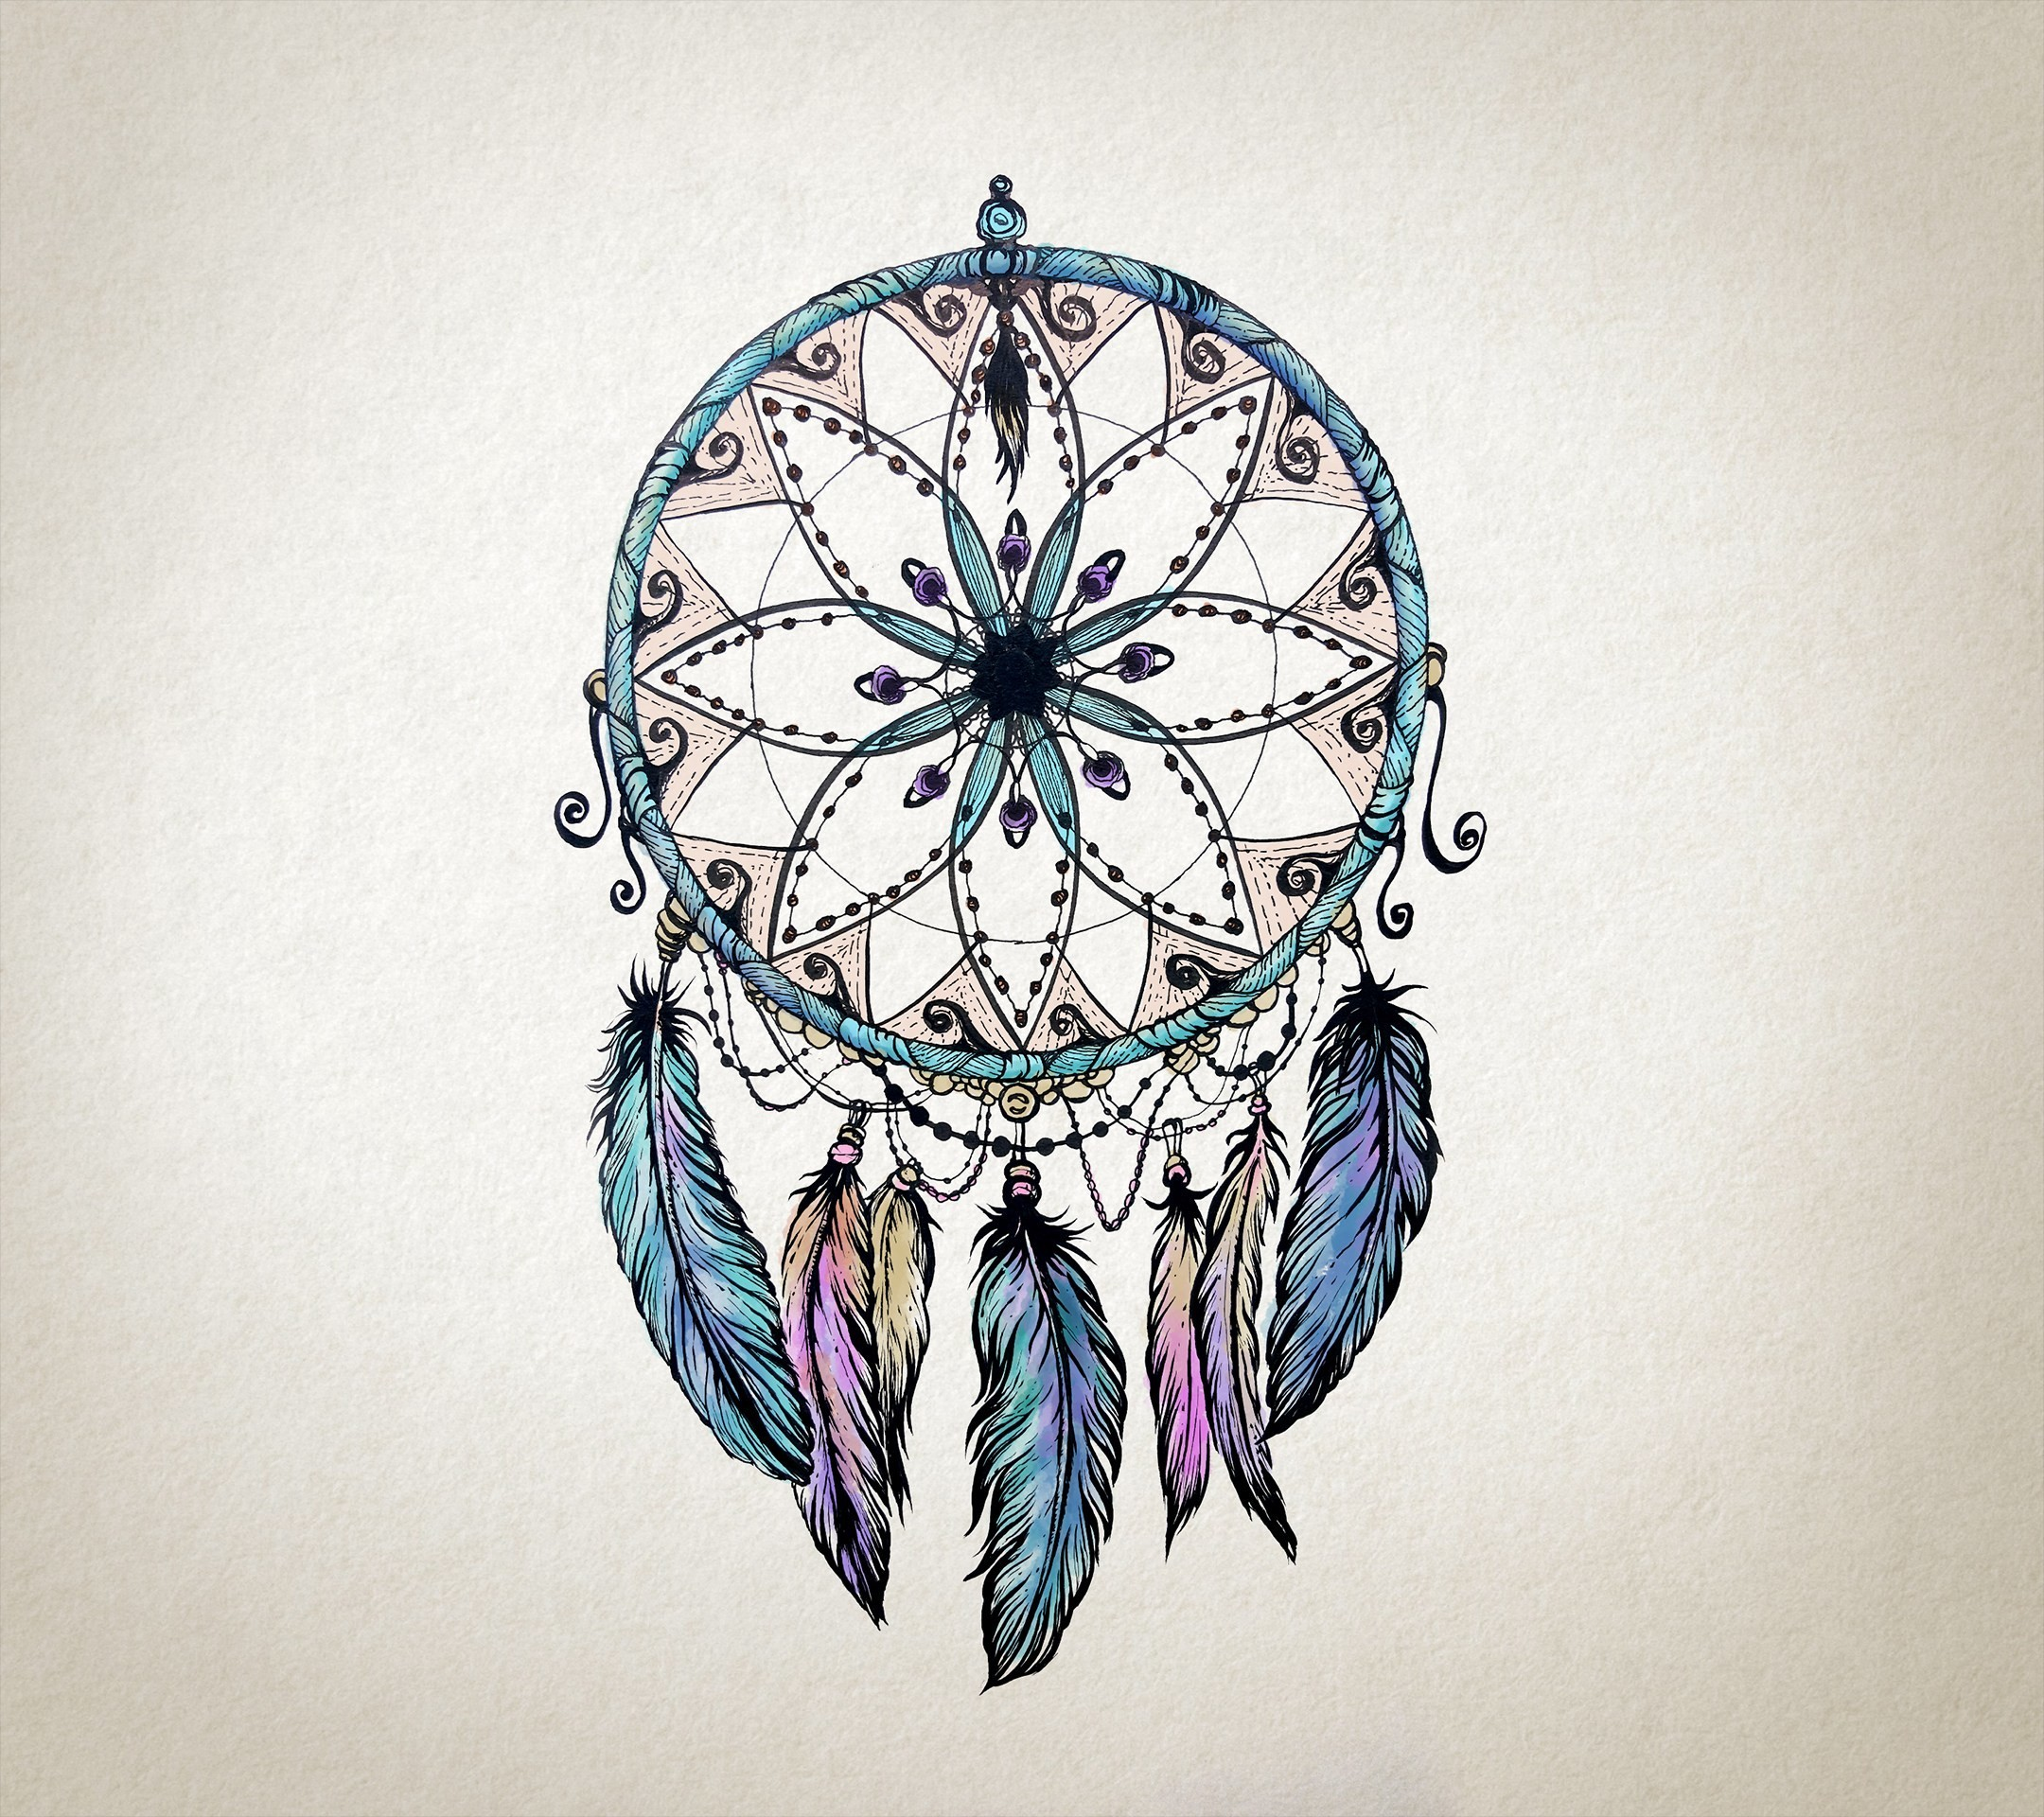 Pictures Of Dream Catchers: Dreamcatcher Tumblr Background ·①